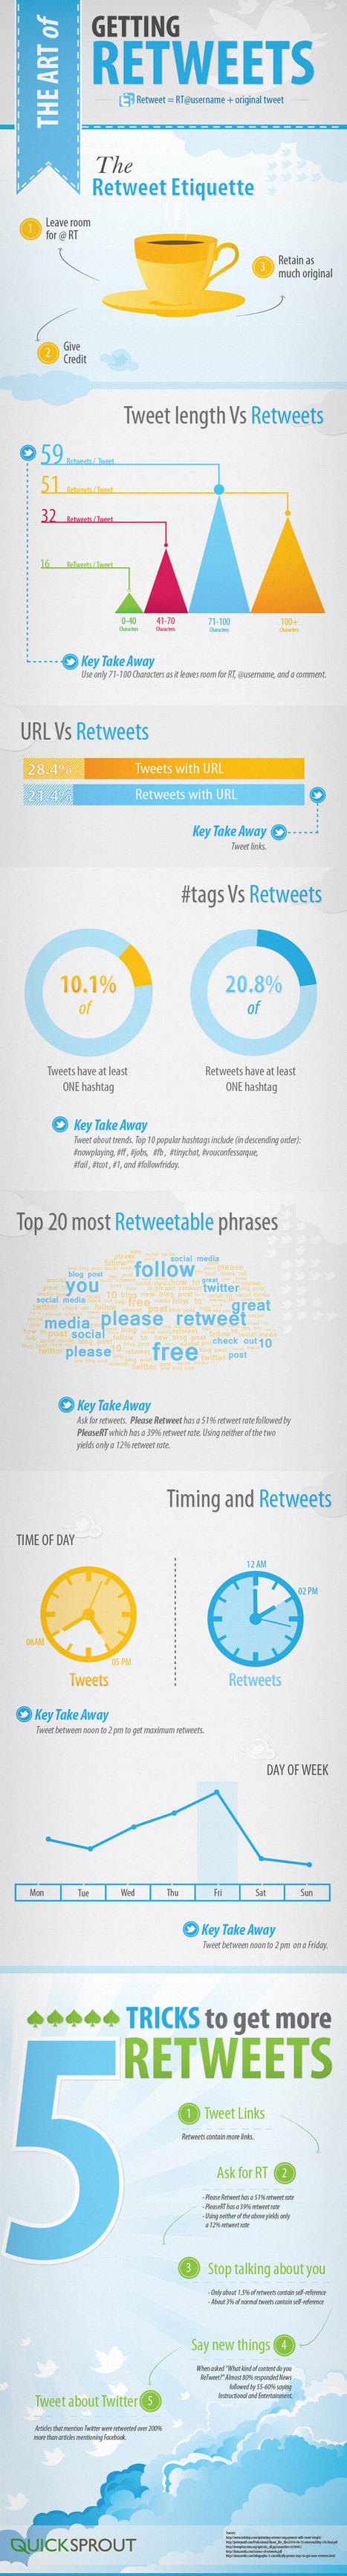 INFOGRAPHIC: The Art Of Getting More Retweets - socialmouths | Cloud Central | Scoop.it